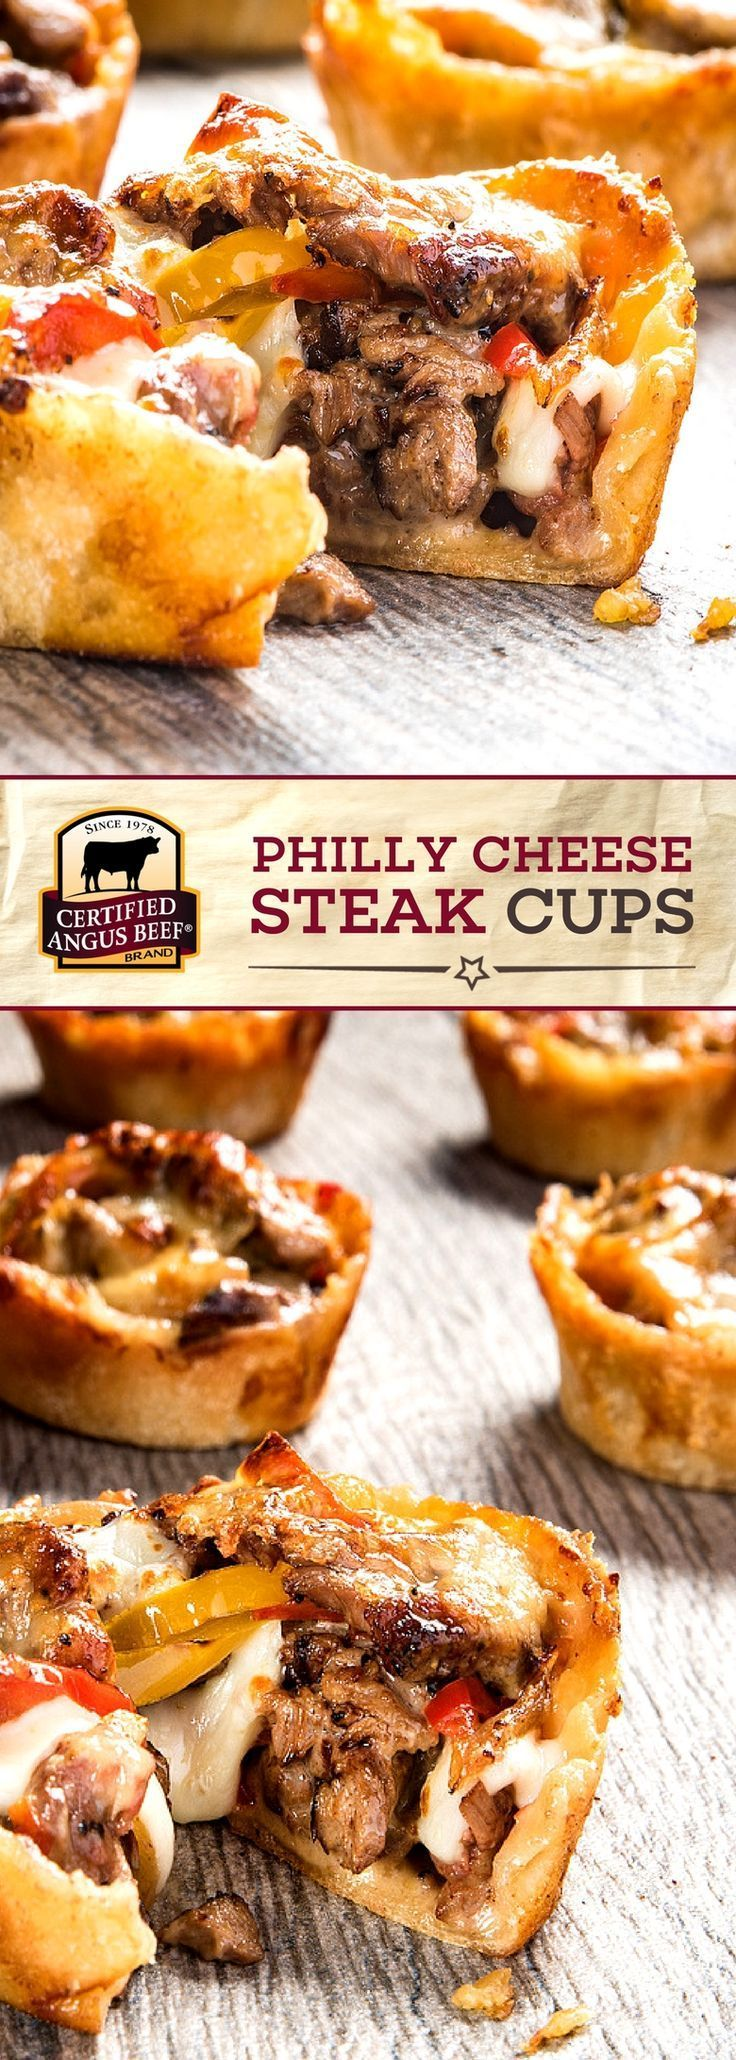 Certified Angus Beef®️️️️️️️️️️️️️️️️️️️️️️️️ brand Philly CHEESE STEAK Cup appetizers have all the cheesy, beefy DELICIOUSNESS of a Philly Cheese Steak packed into a soft, buttery crescent roll crust. Simply IRRESISTIBLE!! Serve this EASY appetizer recipe at all of your parties and watch them disappear! #beefrecipe #appetizerrecipe #holidayrecipe #certifiedangusbeef #bestangusbeef #gamedayrecipe #easyfootballfood